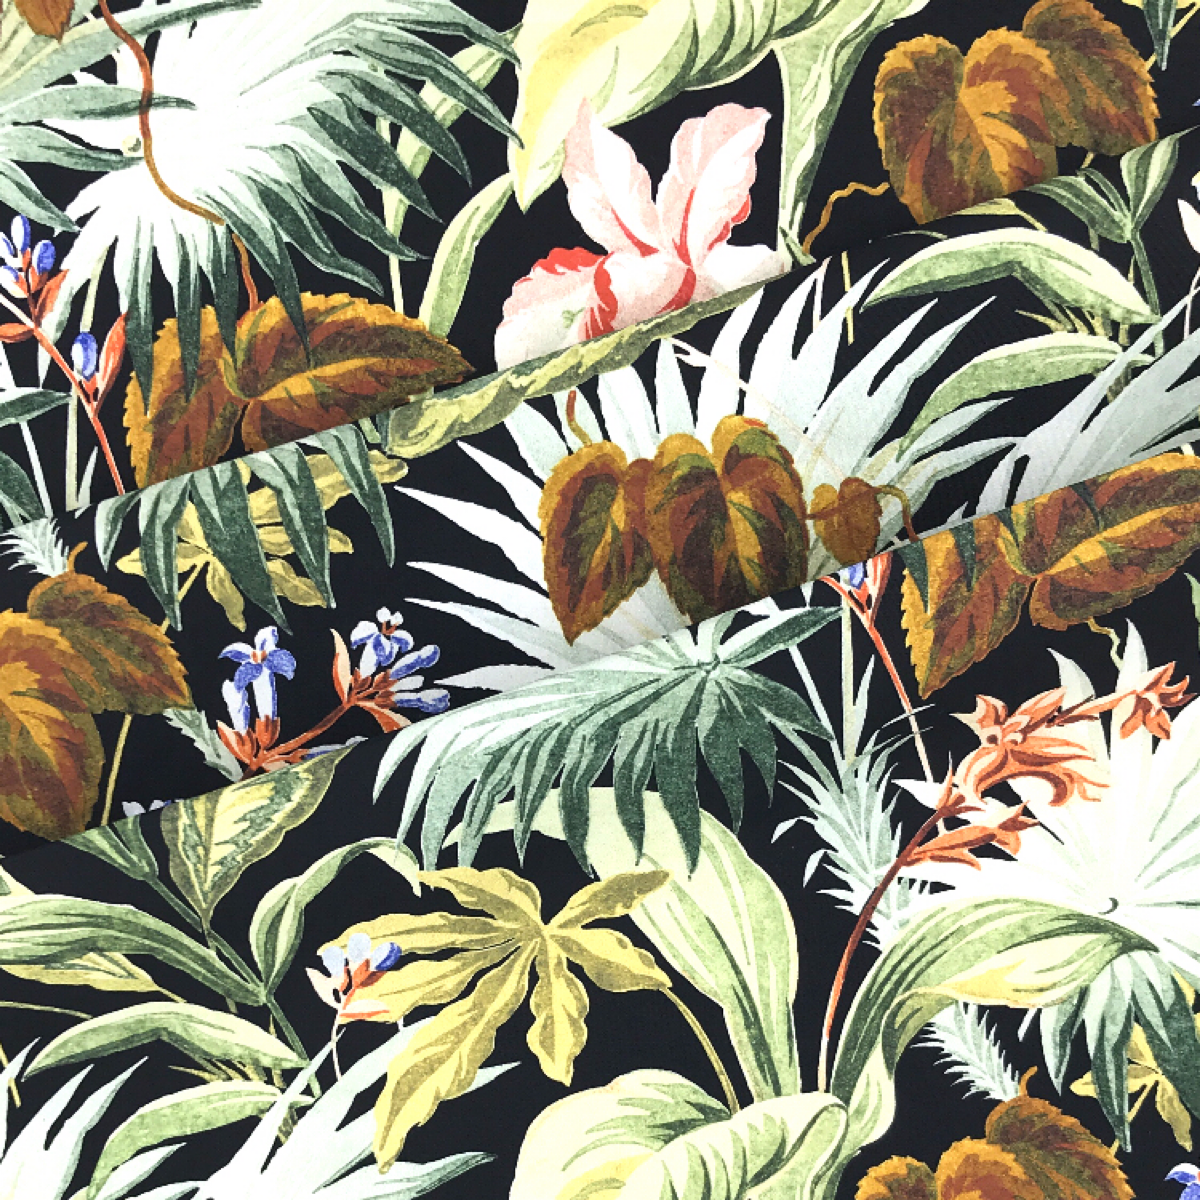 Black Based Green, Orange, and White Tropical Floral Woven Textile by Beach & Body by Clerici Tessuto